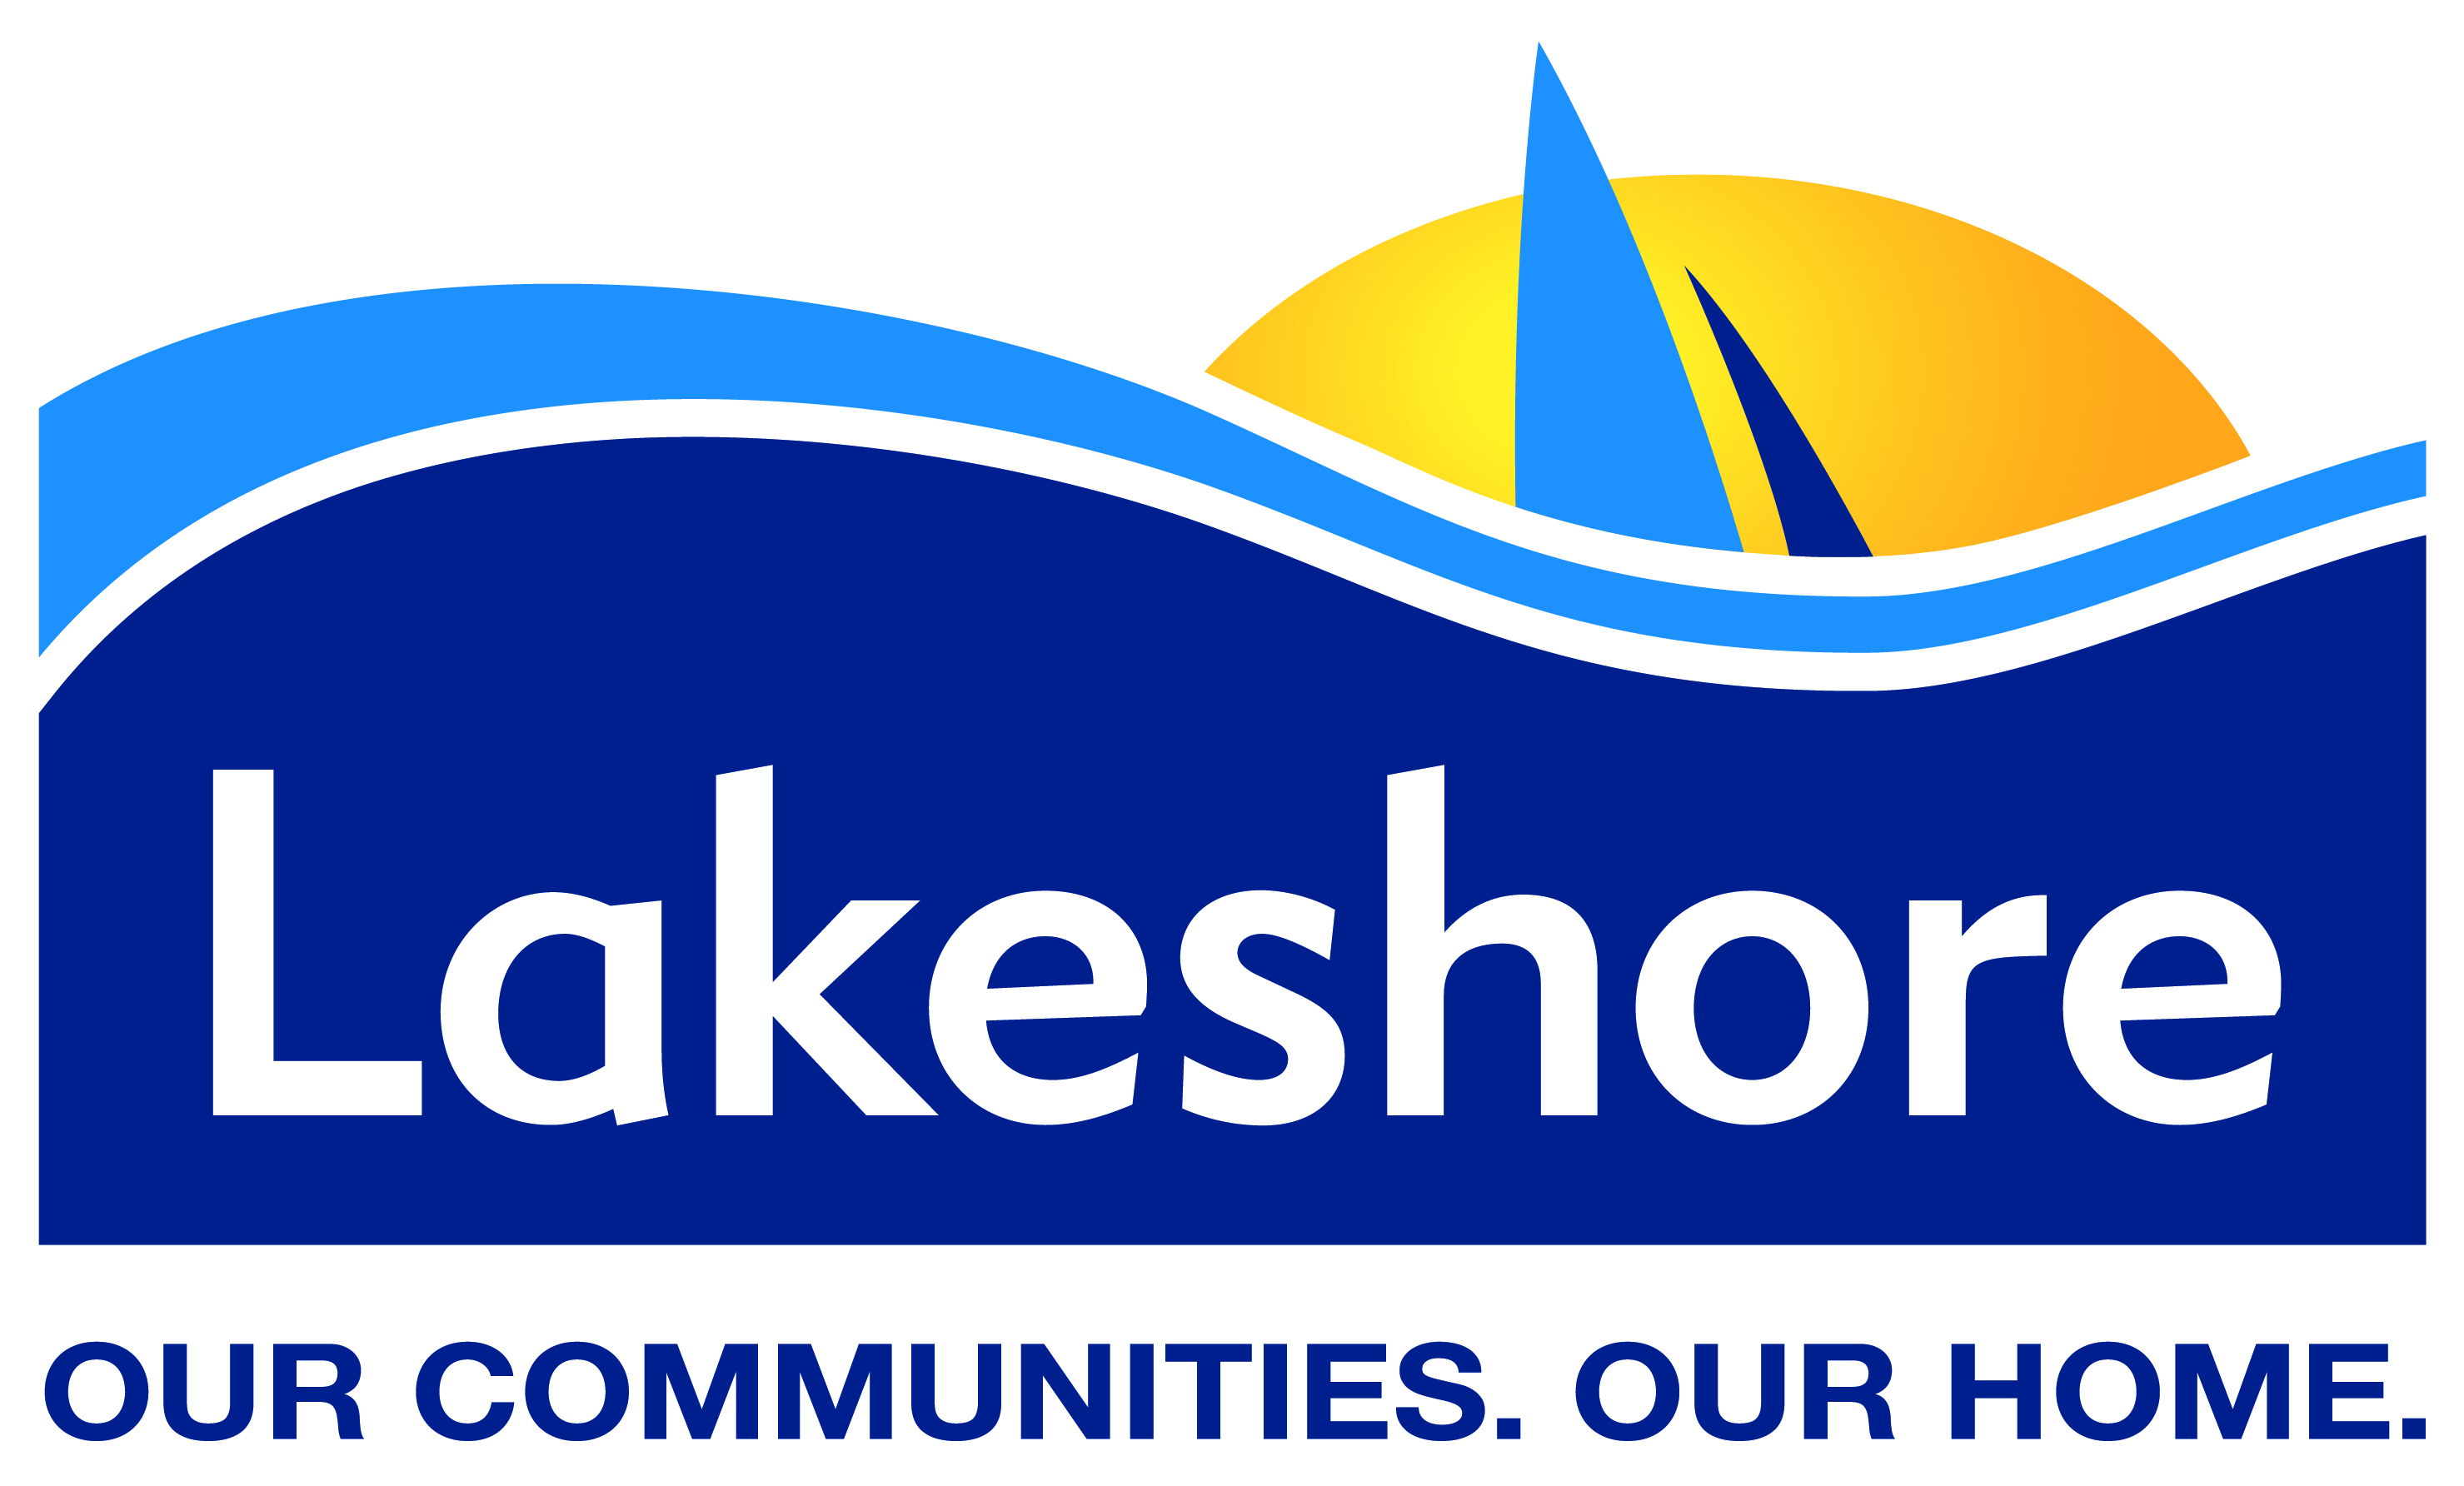 Municipality of Lakeshore